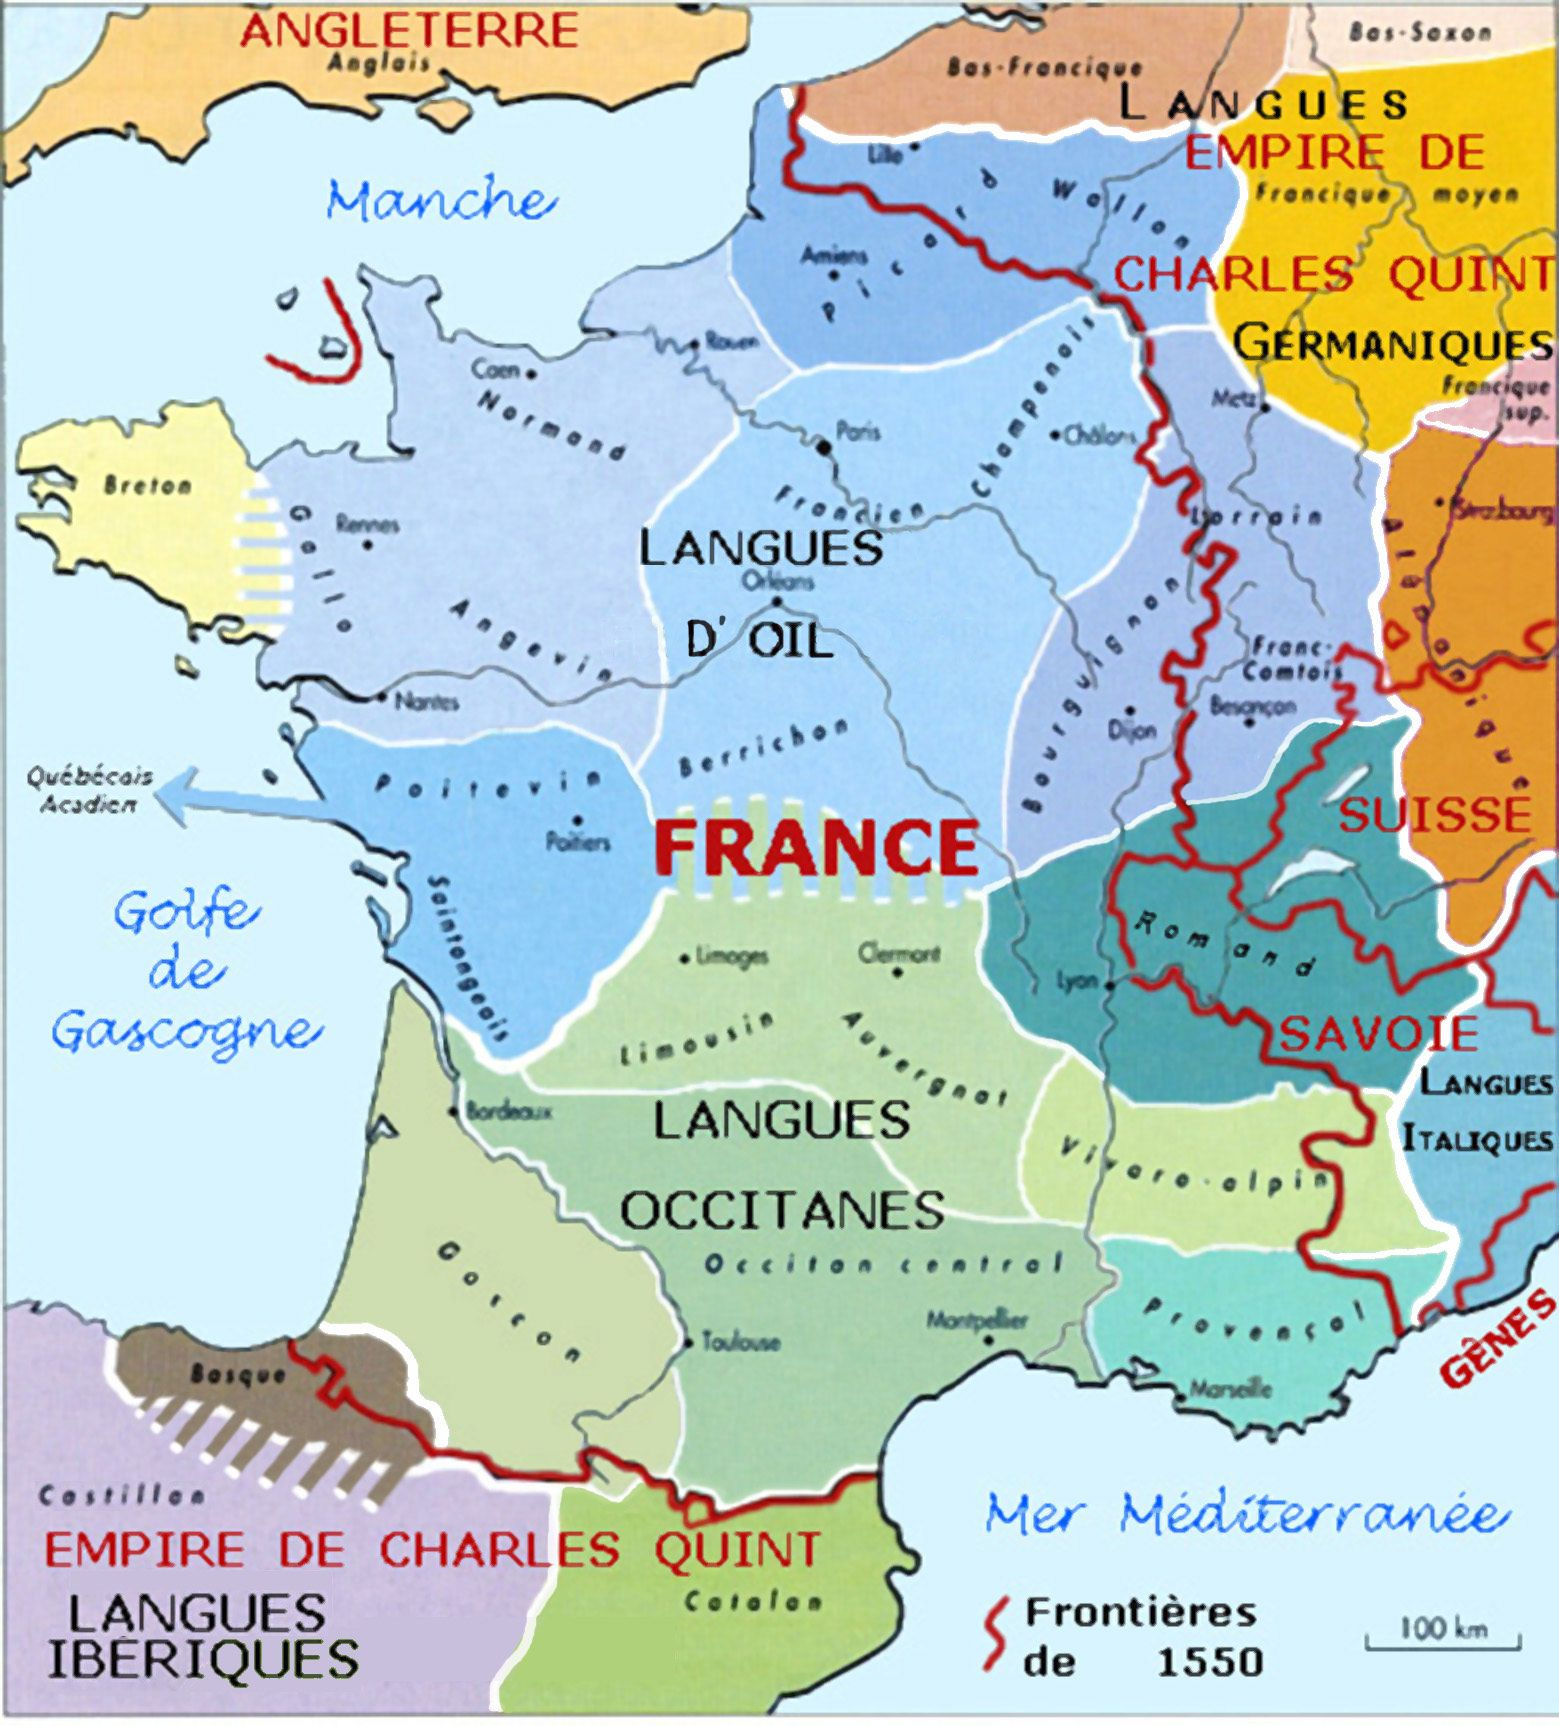 France On A Map Of Europe.France Languages Borders 1550 16th Century Europe France